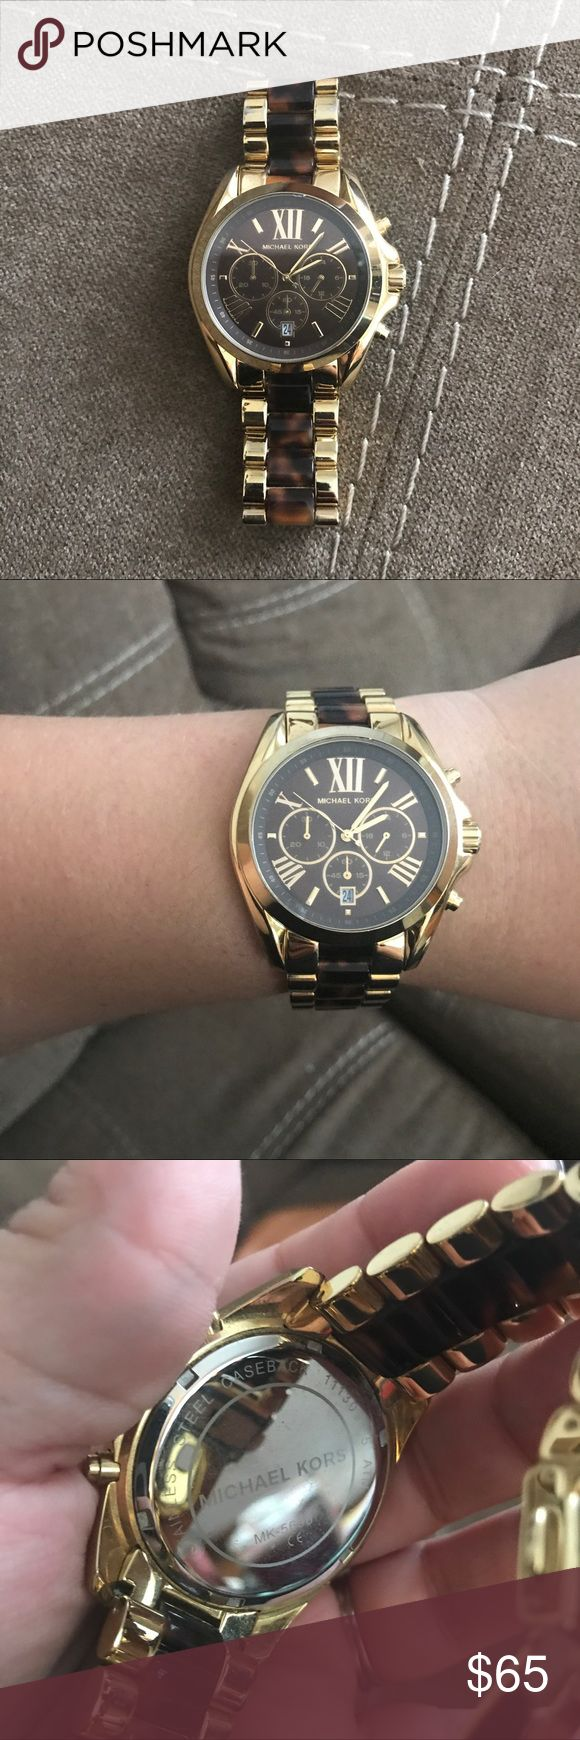 Michael kors brown and gold tortoise watch Oversized face brown tortoise and gold watch. Worn multiple times but in good condition. Needs a watch Battery. 100% authentic, from a smoke free home 💖 Michael Kors Accessories Watches